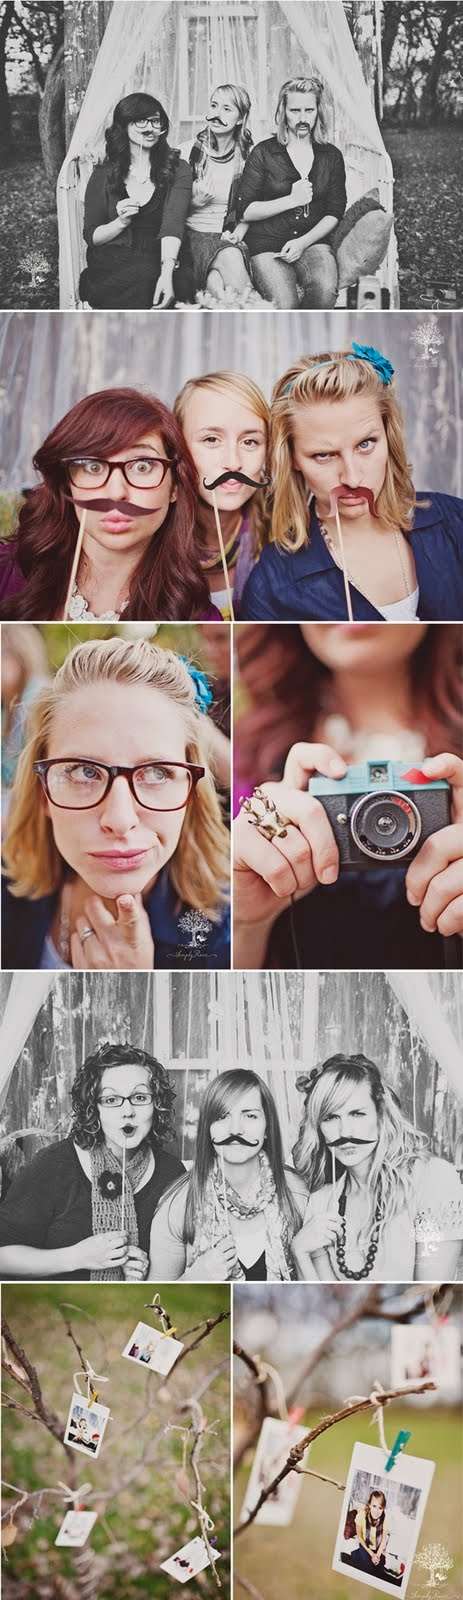 Girlfriends Photoshoot Ideas!